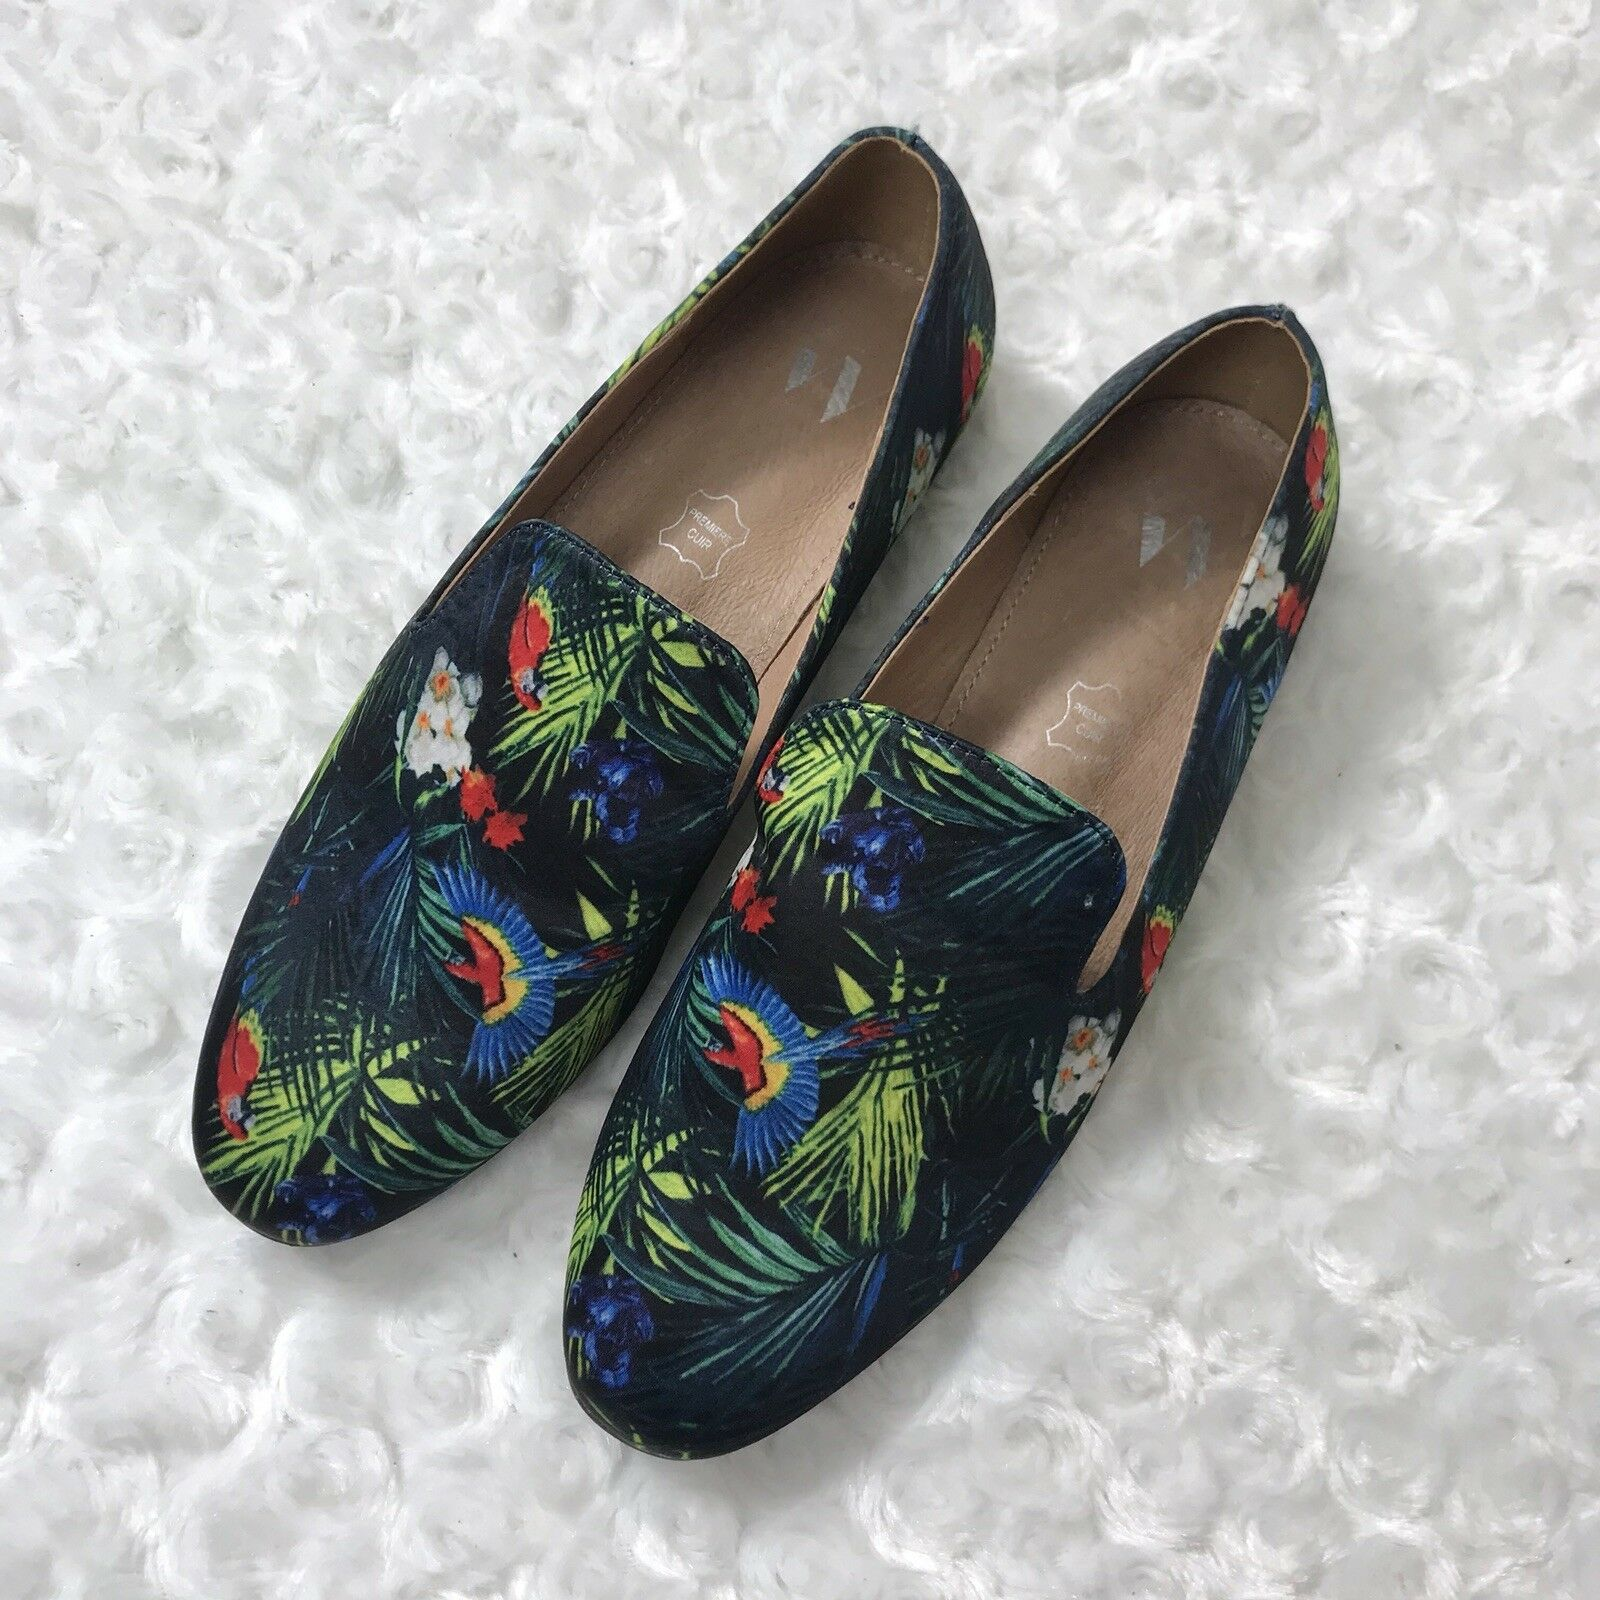 Vanessa Wu 36 6 Tropical Parrot Novelty Novelty Novelty Print Loafers Flats Schuhes Anthropologie c3c1dc